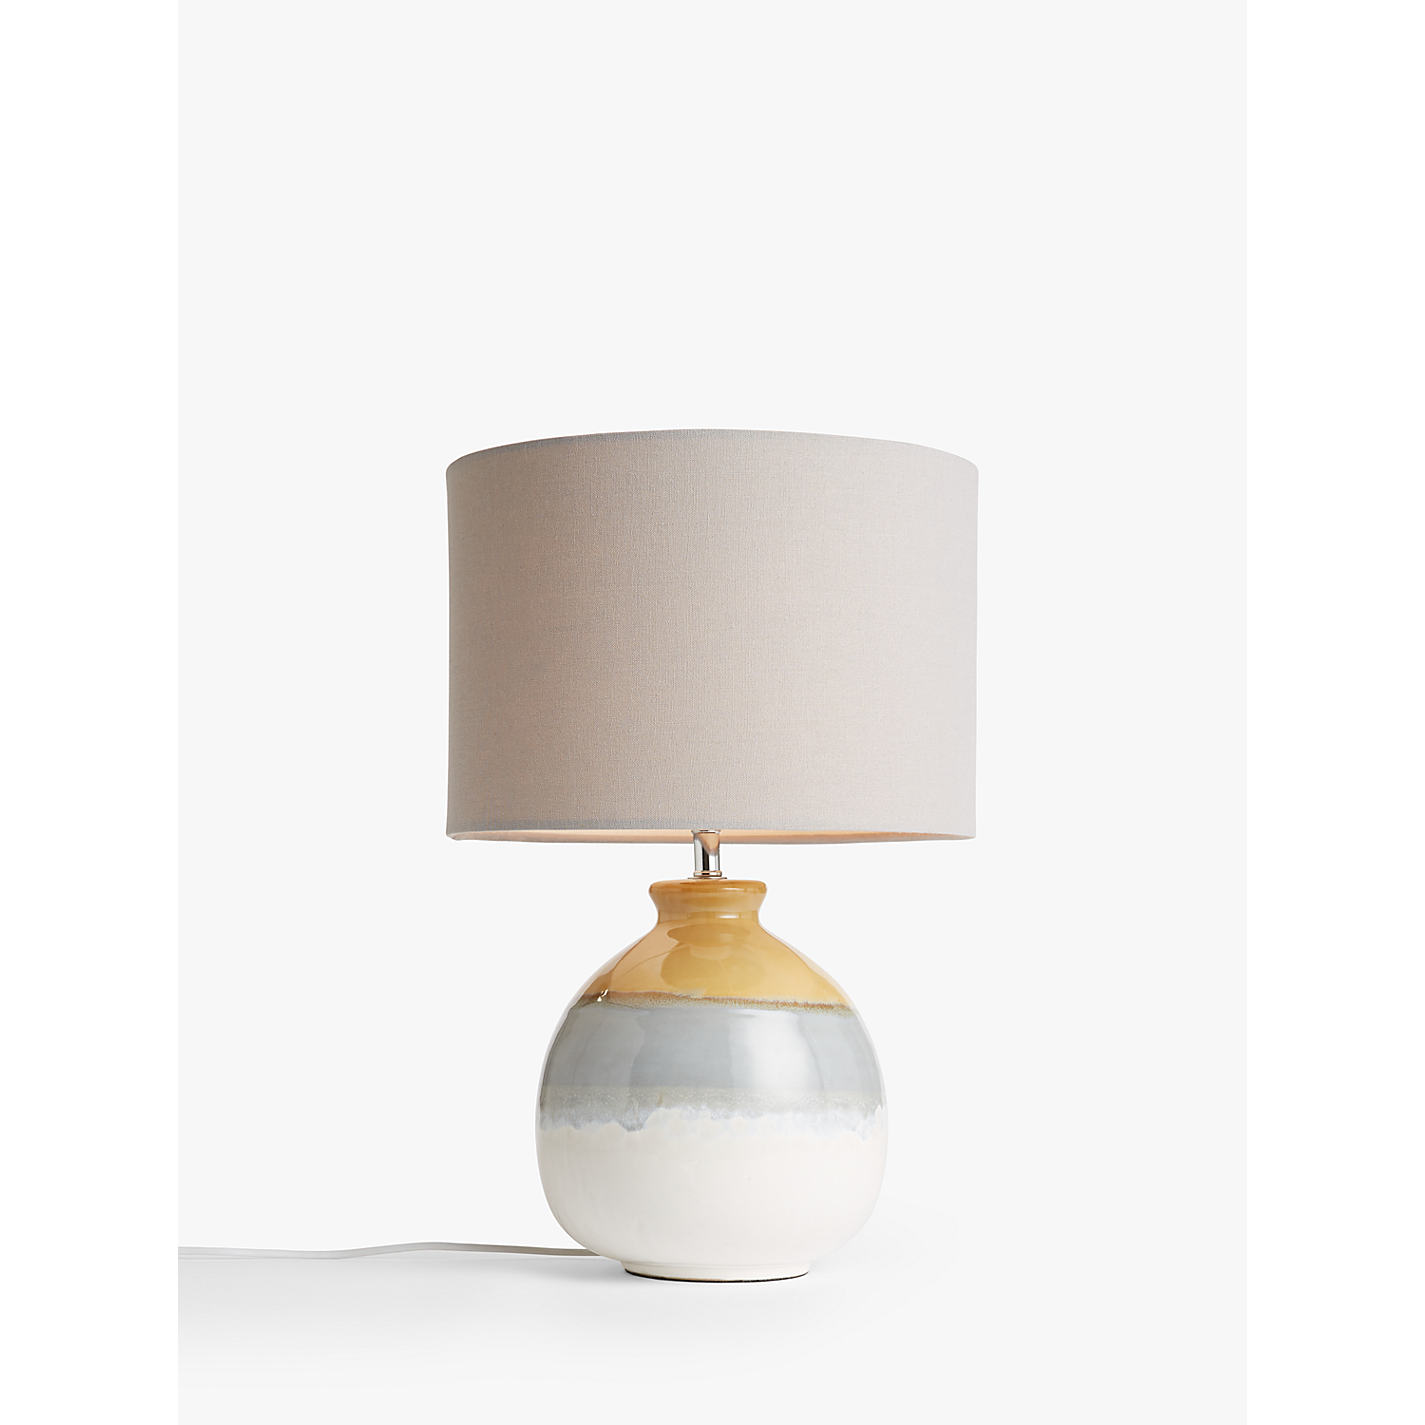 Buy john lewis martha stripe ceramic table lamp john lewis buy john lewis martha stripe ceramic table lamp online at johnlewis mozeypictures Choice Image